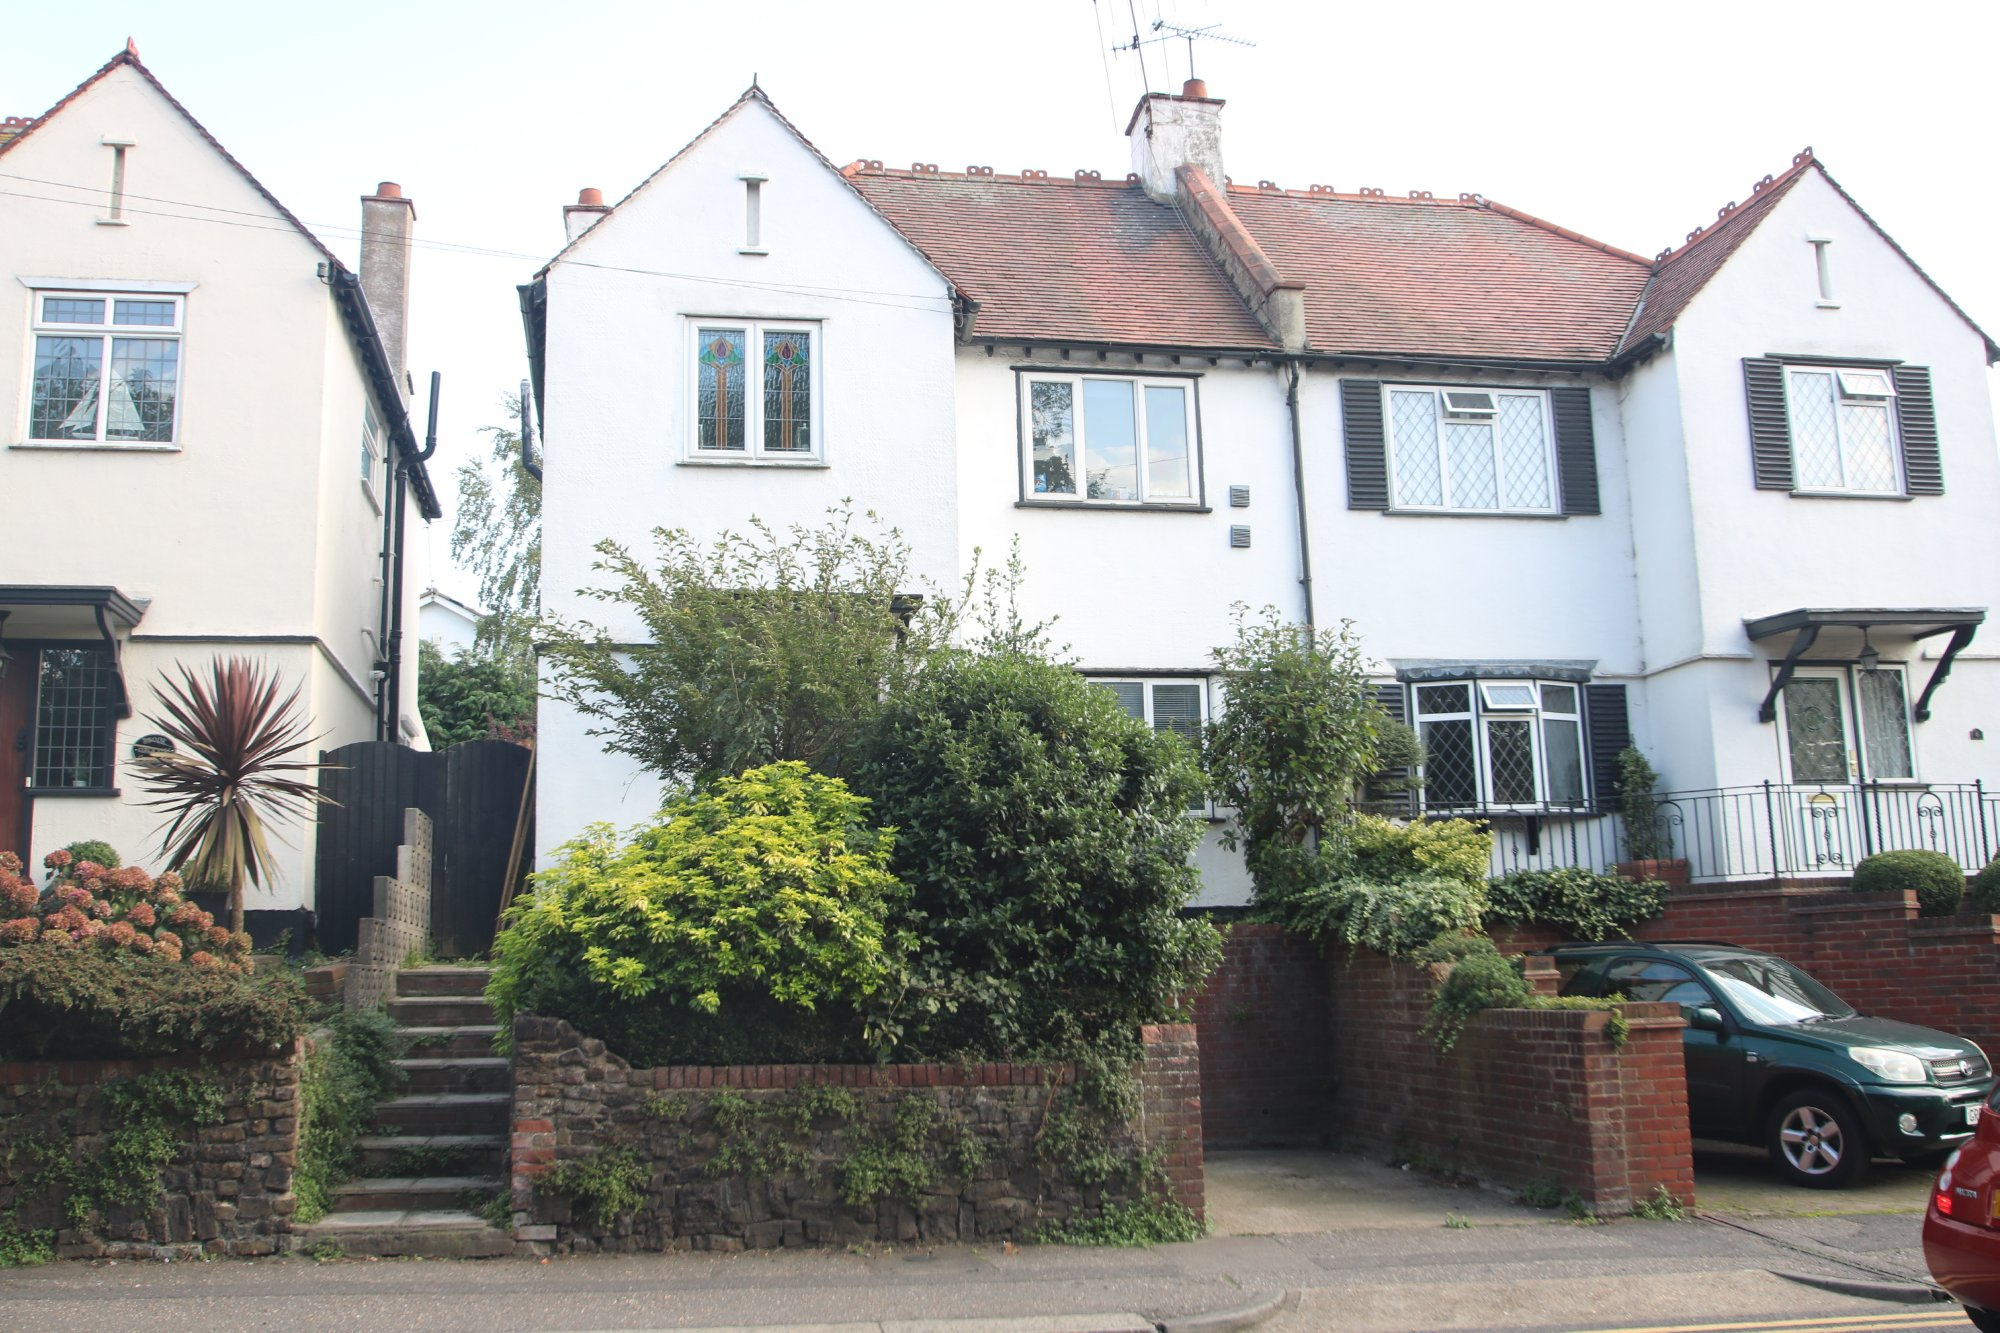 Priory Crescent, Prittlewell, Southend-on-Sea